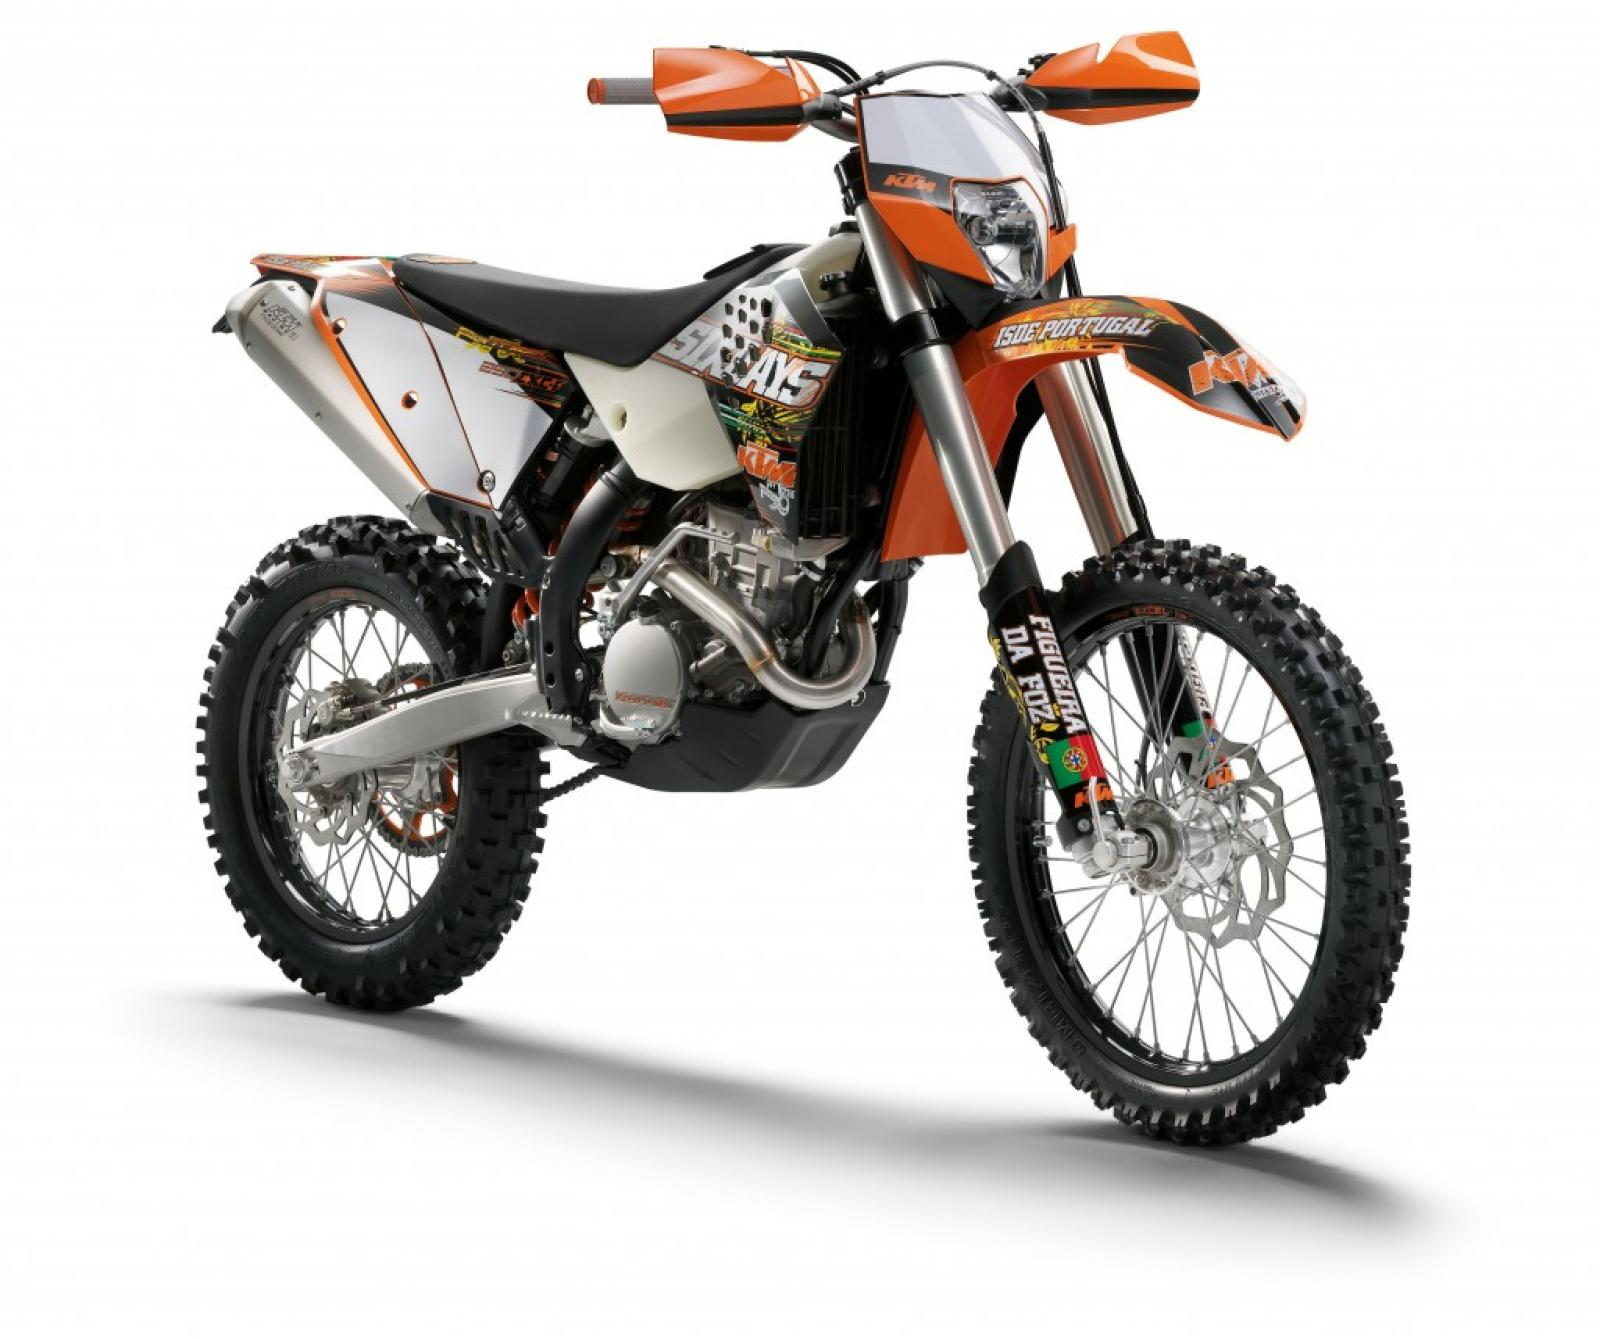 2010 ktm 250 exc f moto zombdrive com. Black Bedroom Furniture Sets. Home Design Ideas